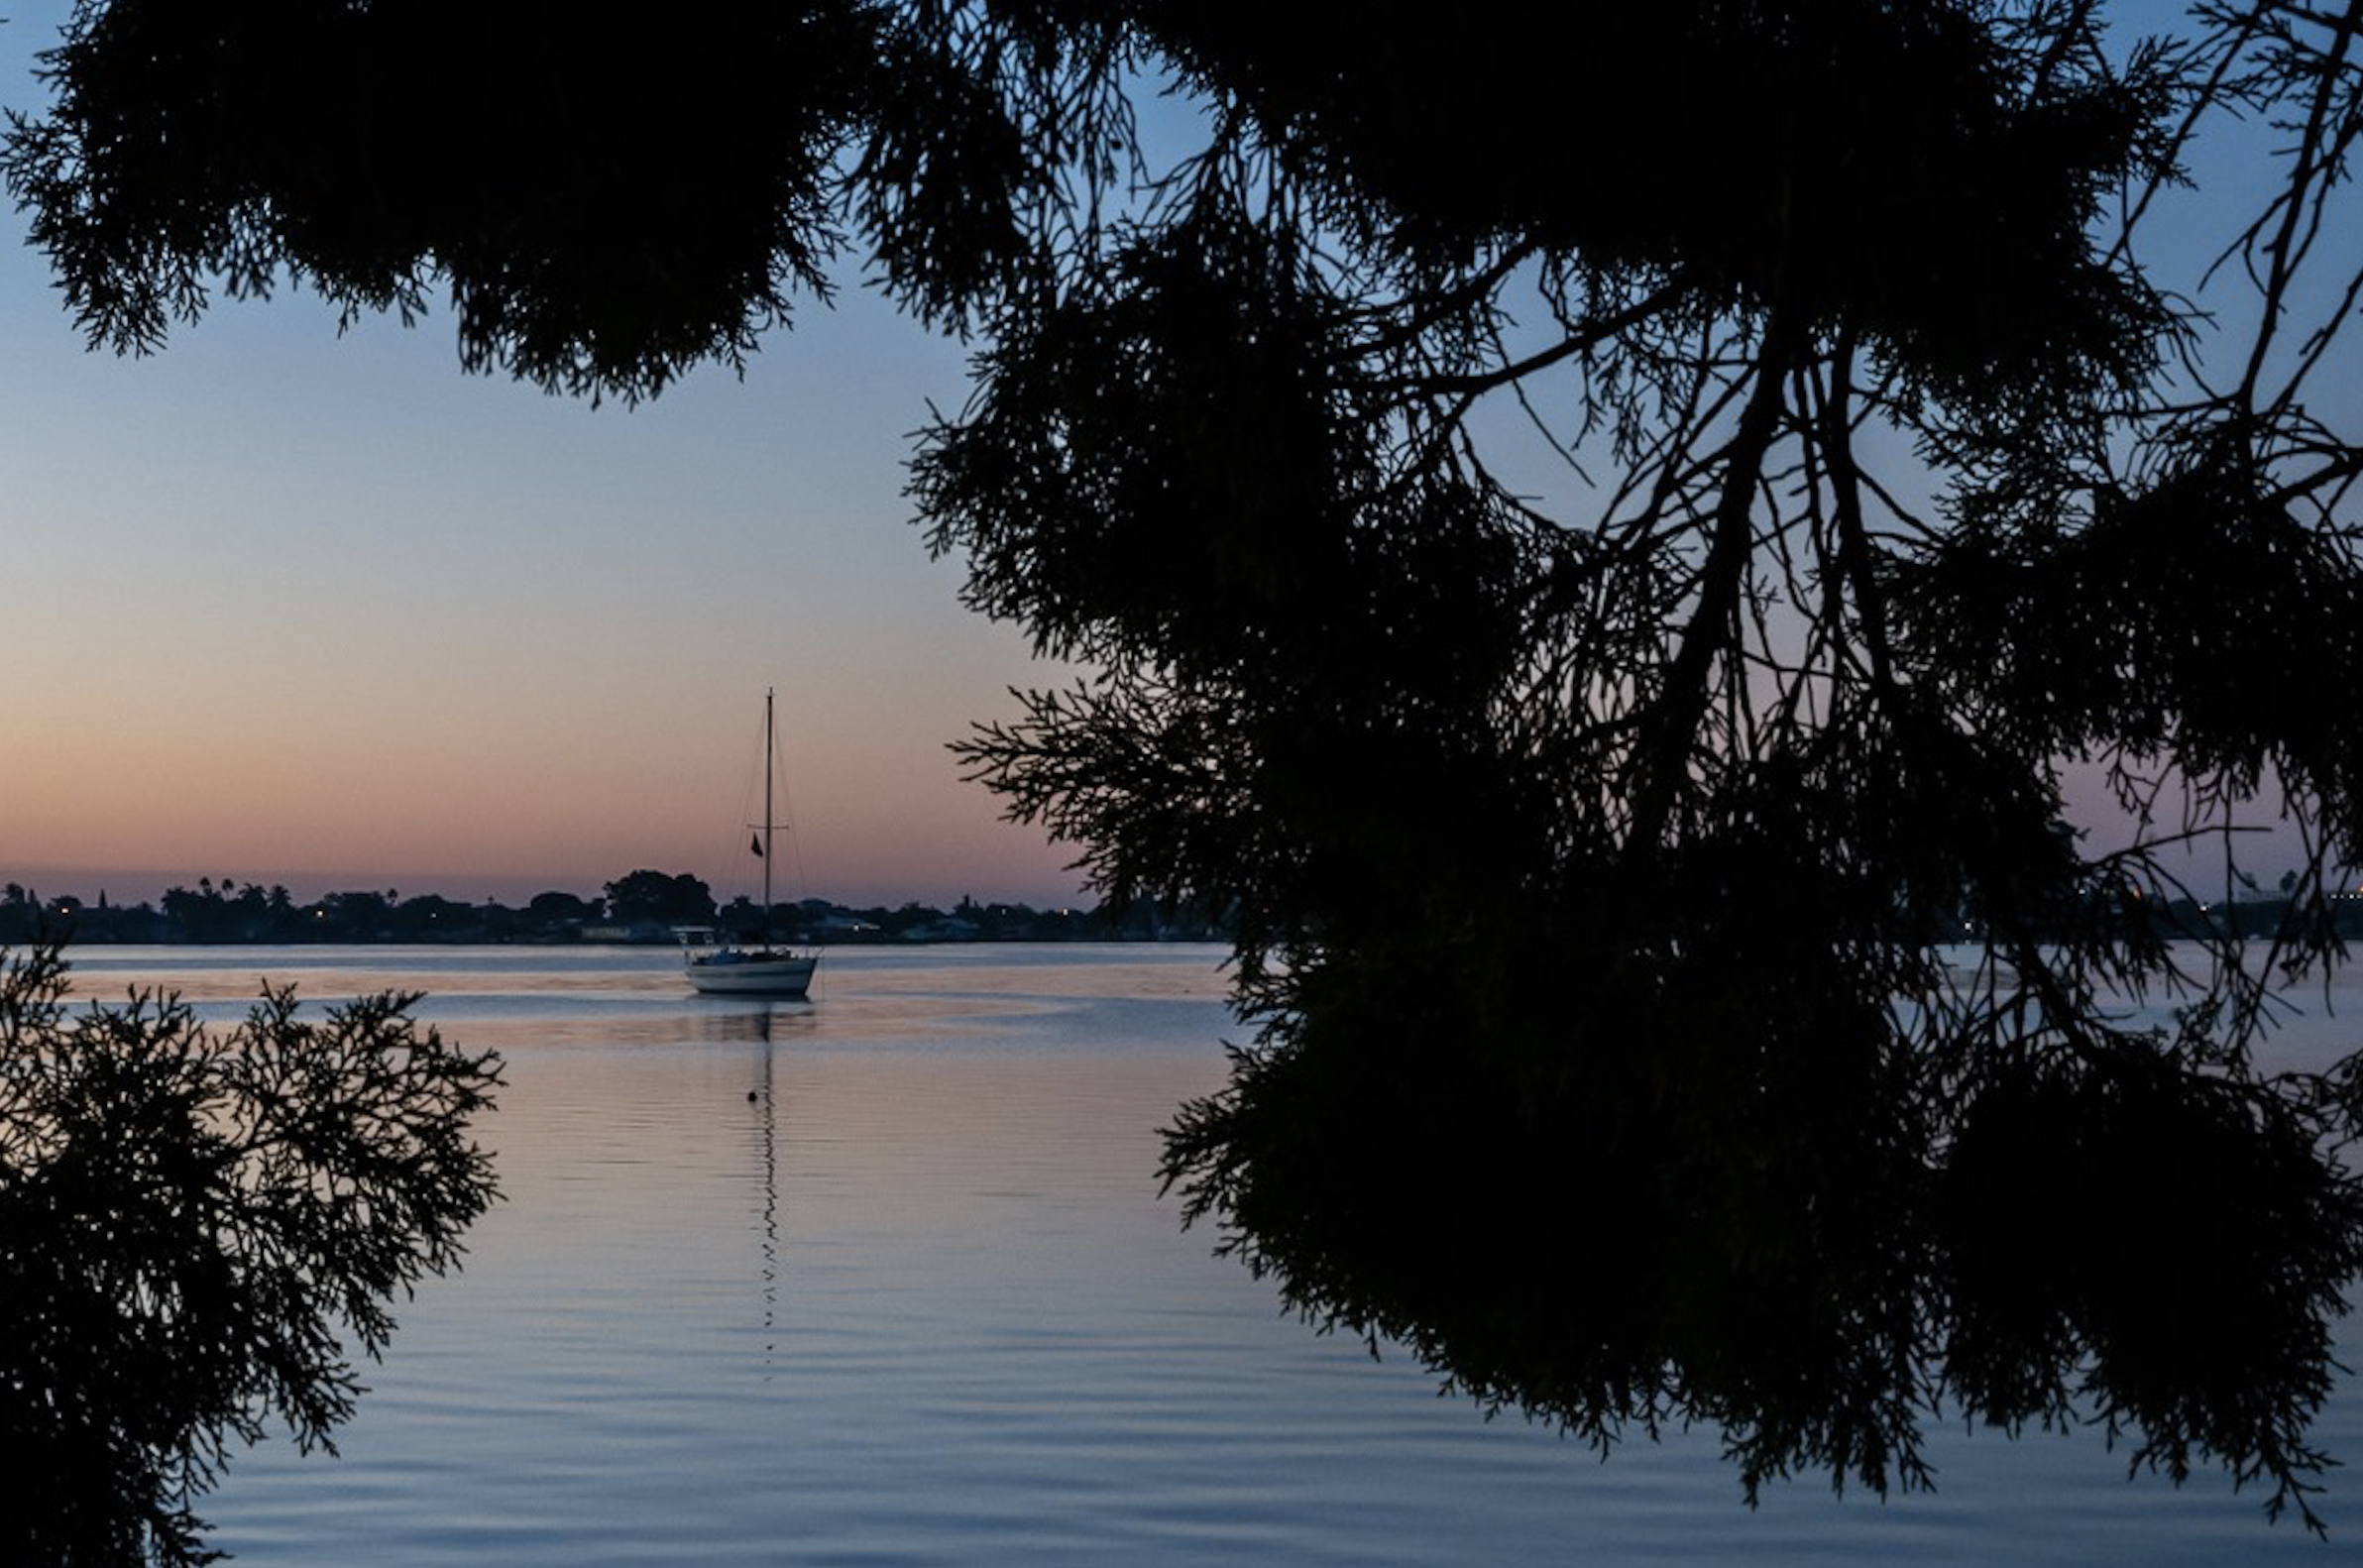 A photo of a boat on the water through the trees at sunset.